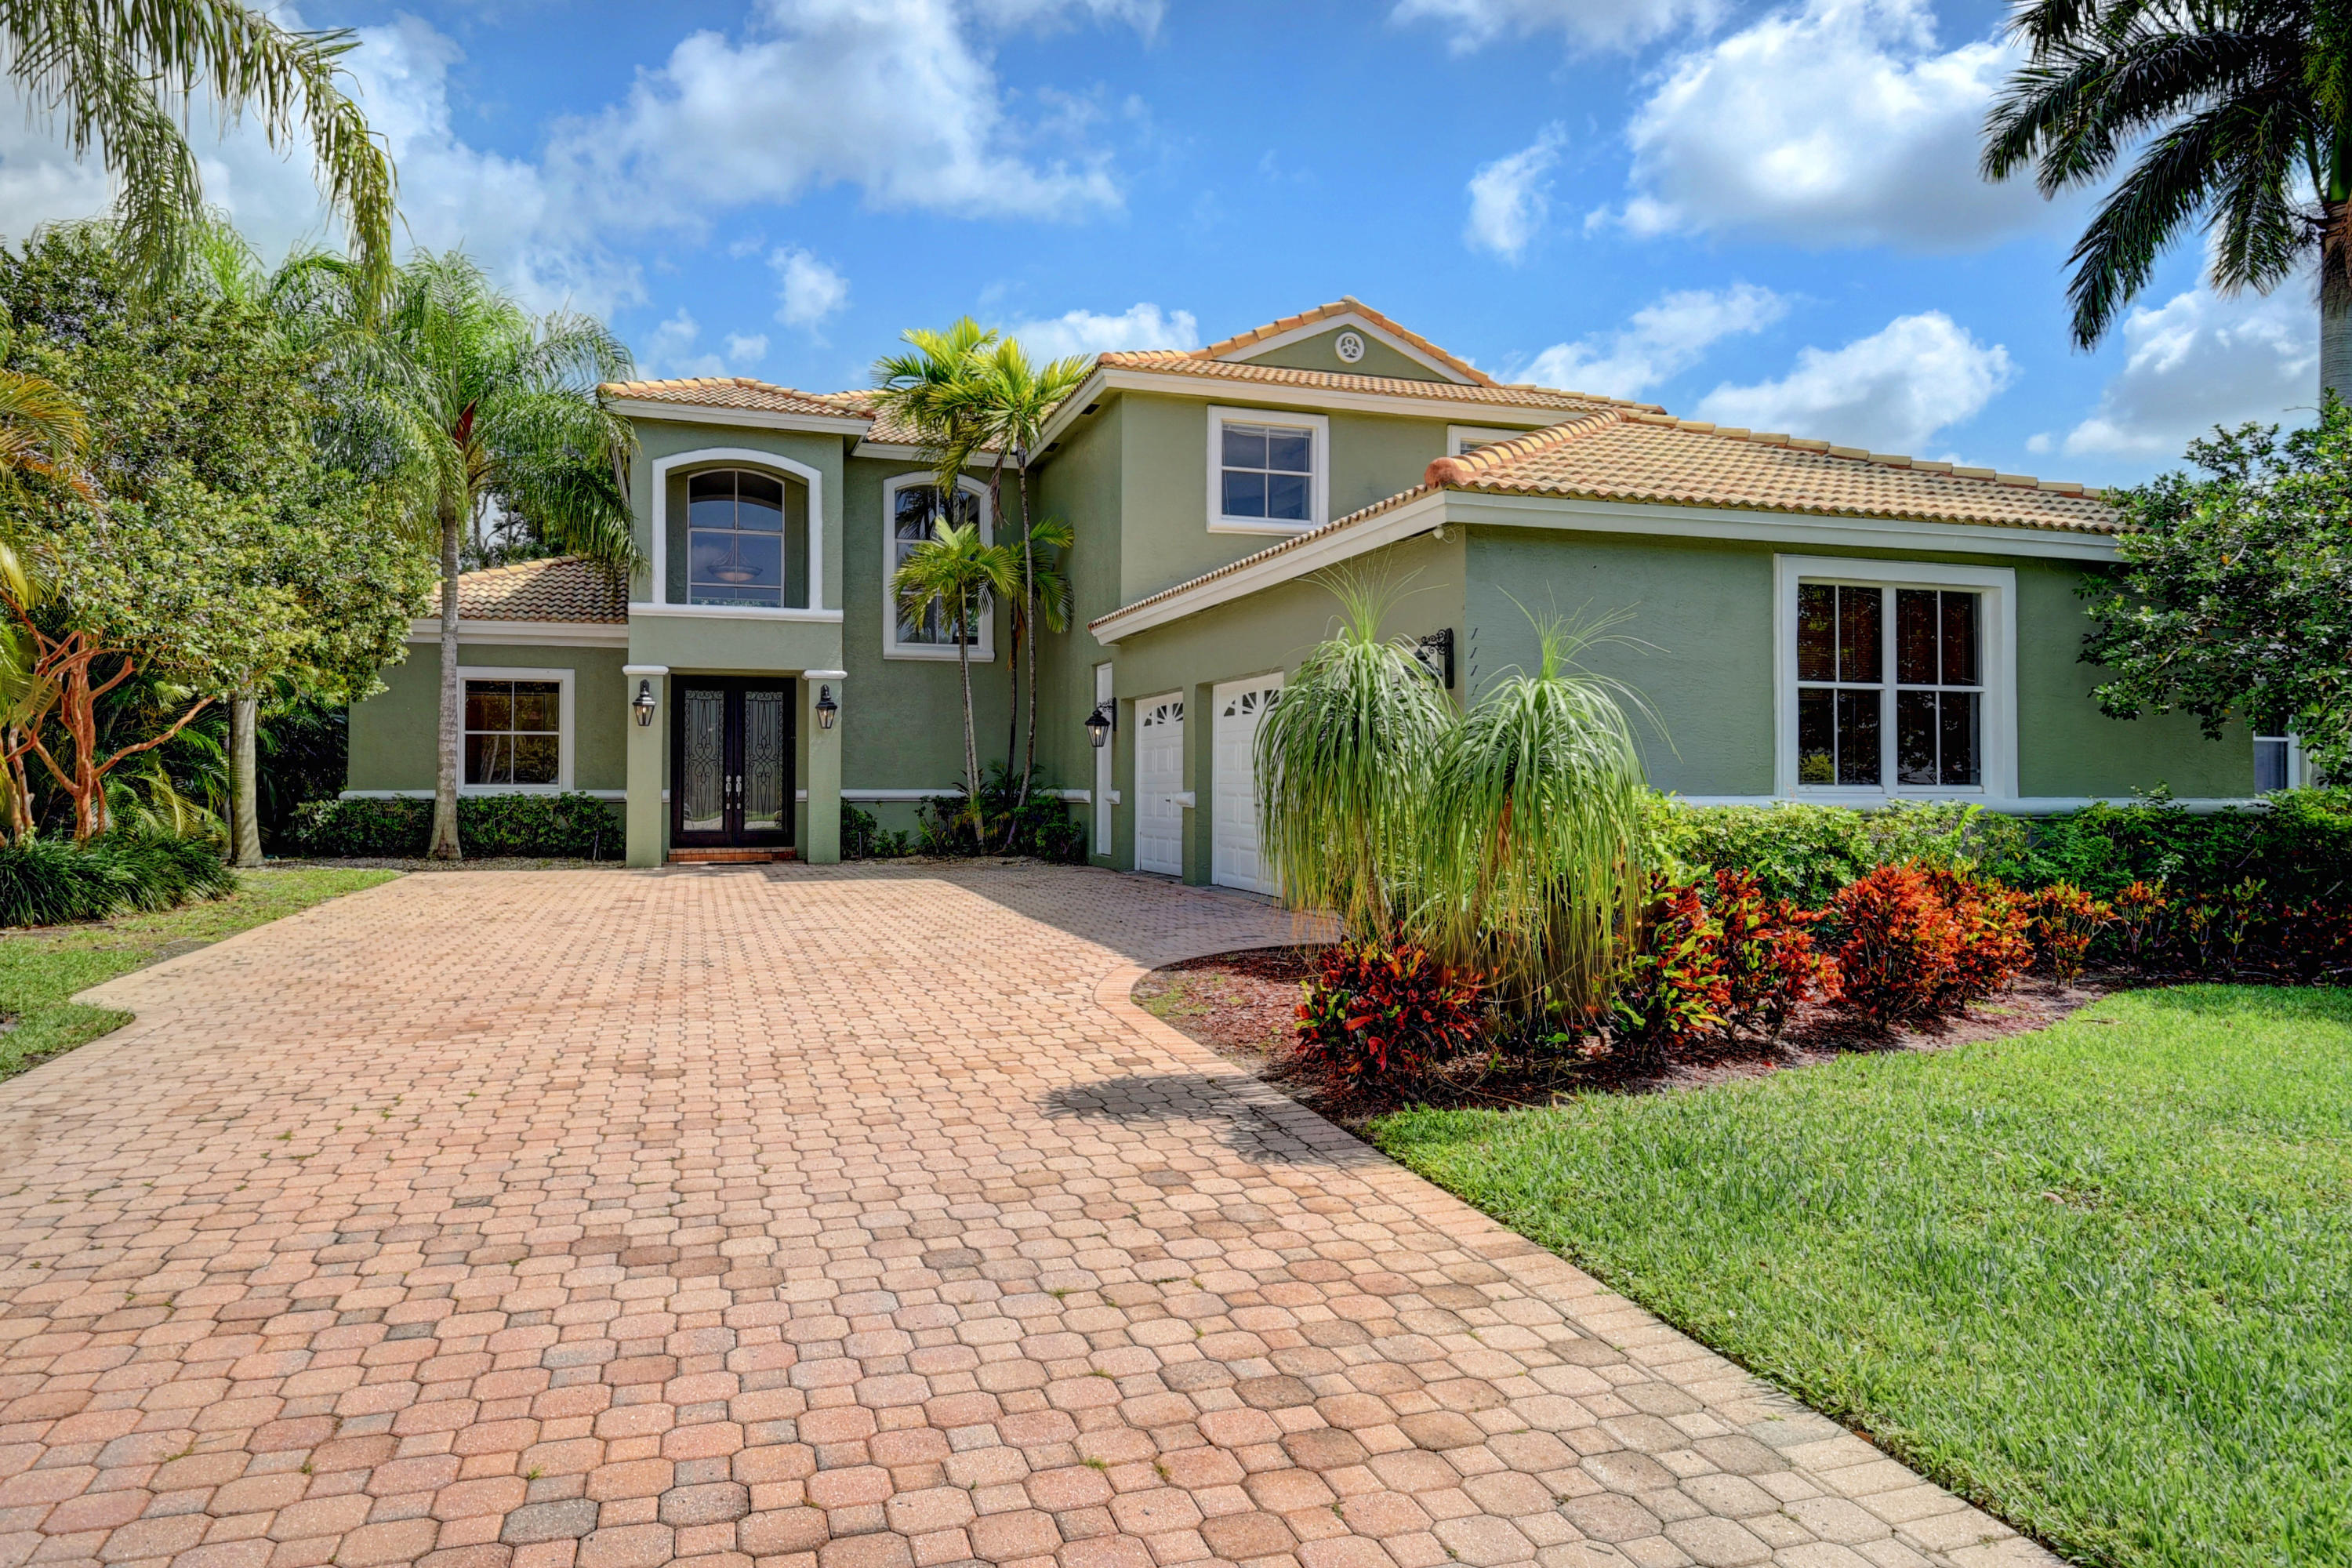 Photo of 11113 Blue Coral Drive, Boca Raton, FL 33498